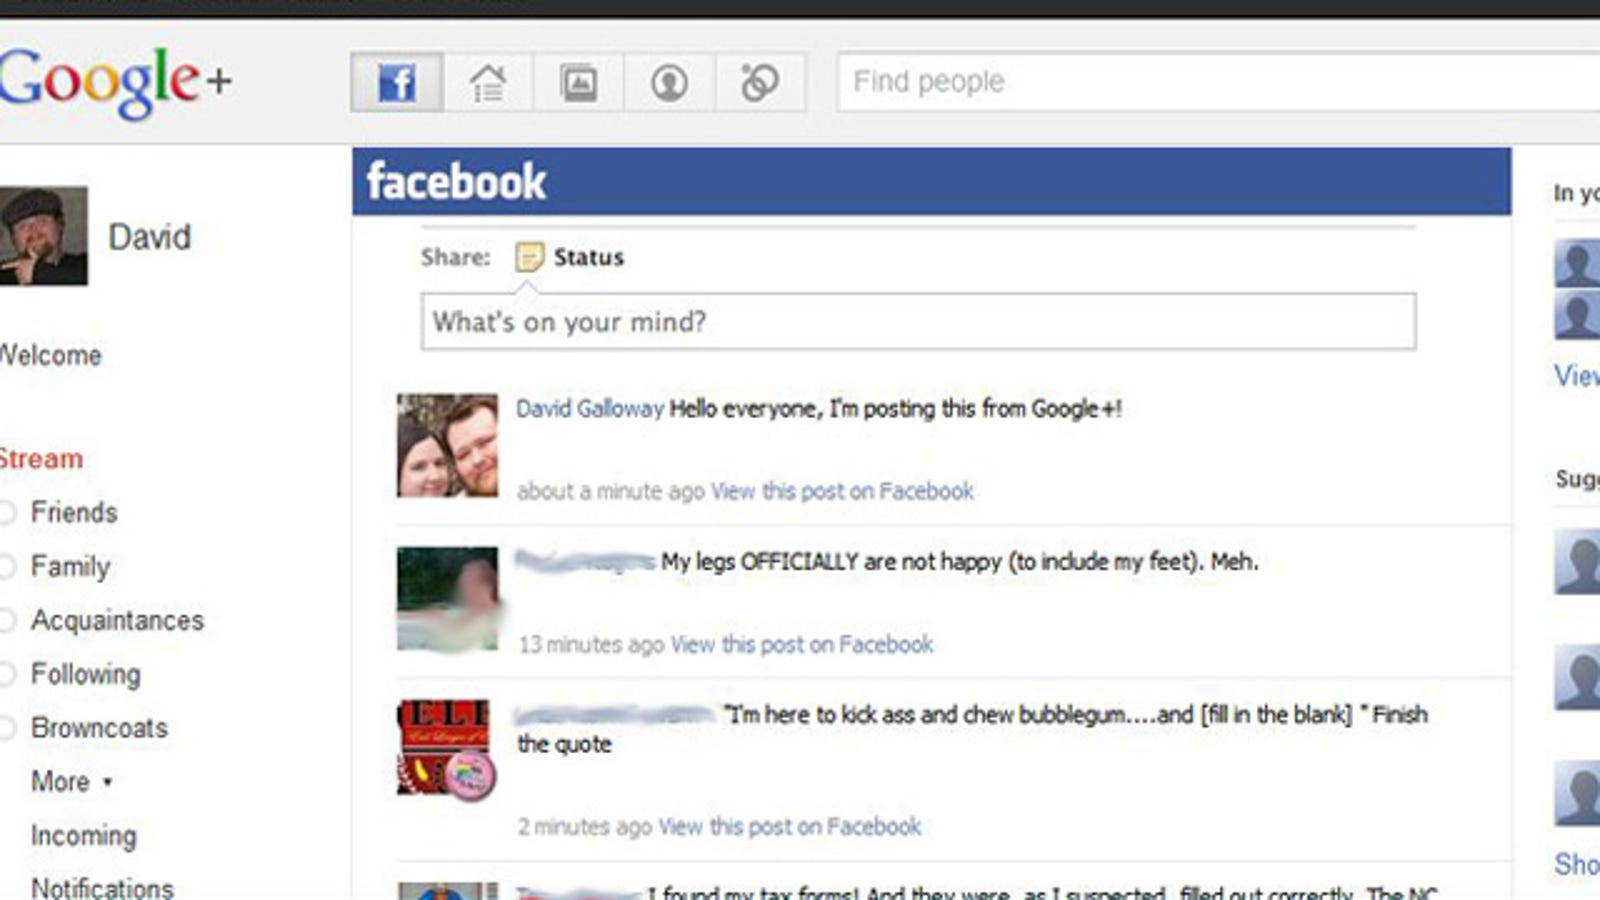 Google+Facebook Extension Integrates Facebook Viewing and Updating